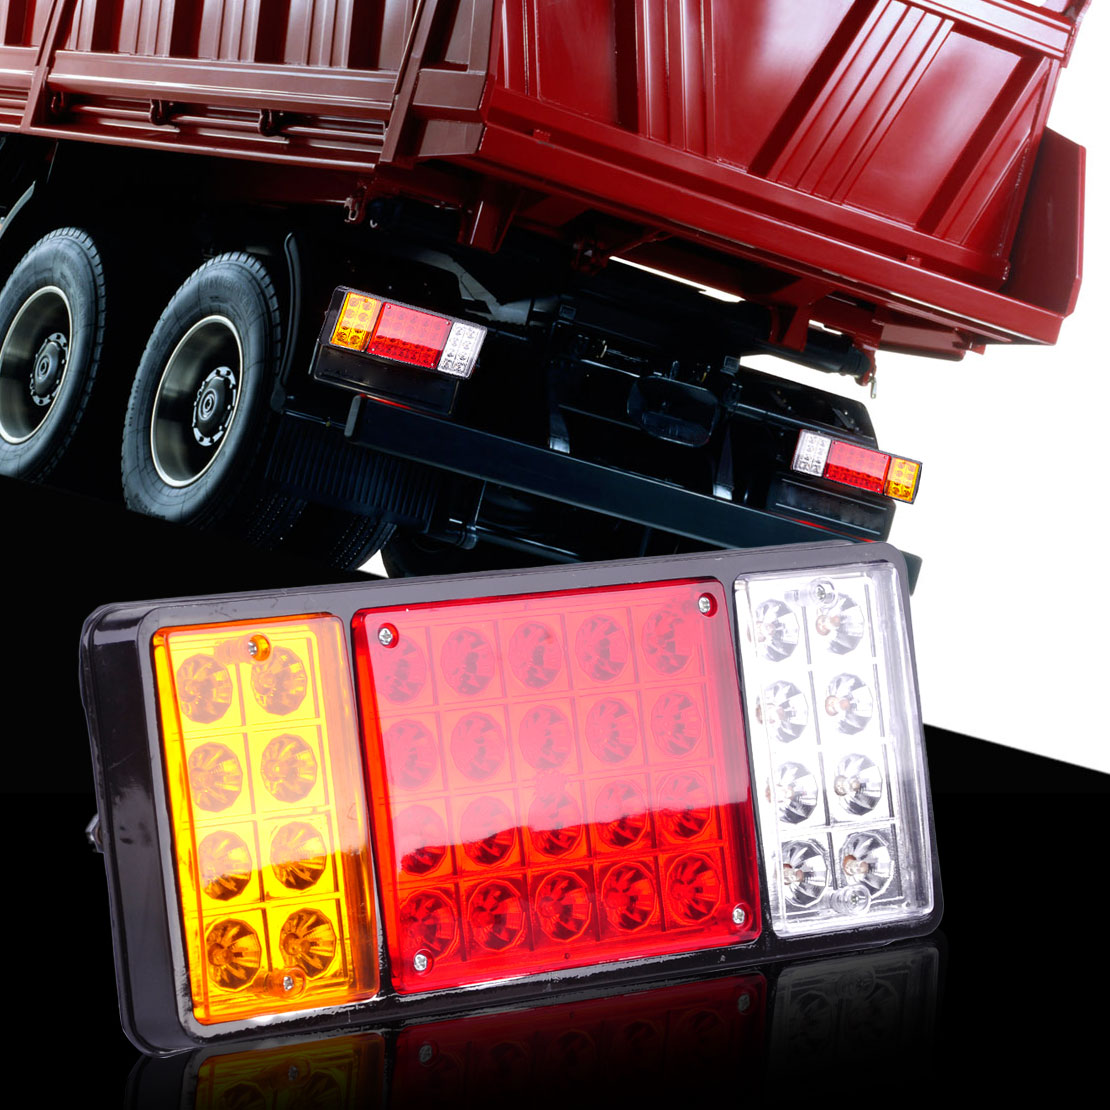 beler New Waterproof Truck 36 LED Rear Light Tail/Brake Stop Lamp Reverse Indicator Trailers Truck Ute Boat Van Caravans 12V car styling tail lights for toyota highlander 2015 led tail lamp rear trunk lamp cover drl signal brake reverse